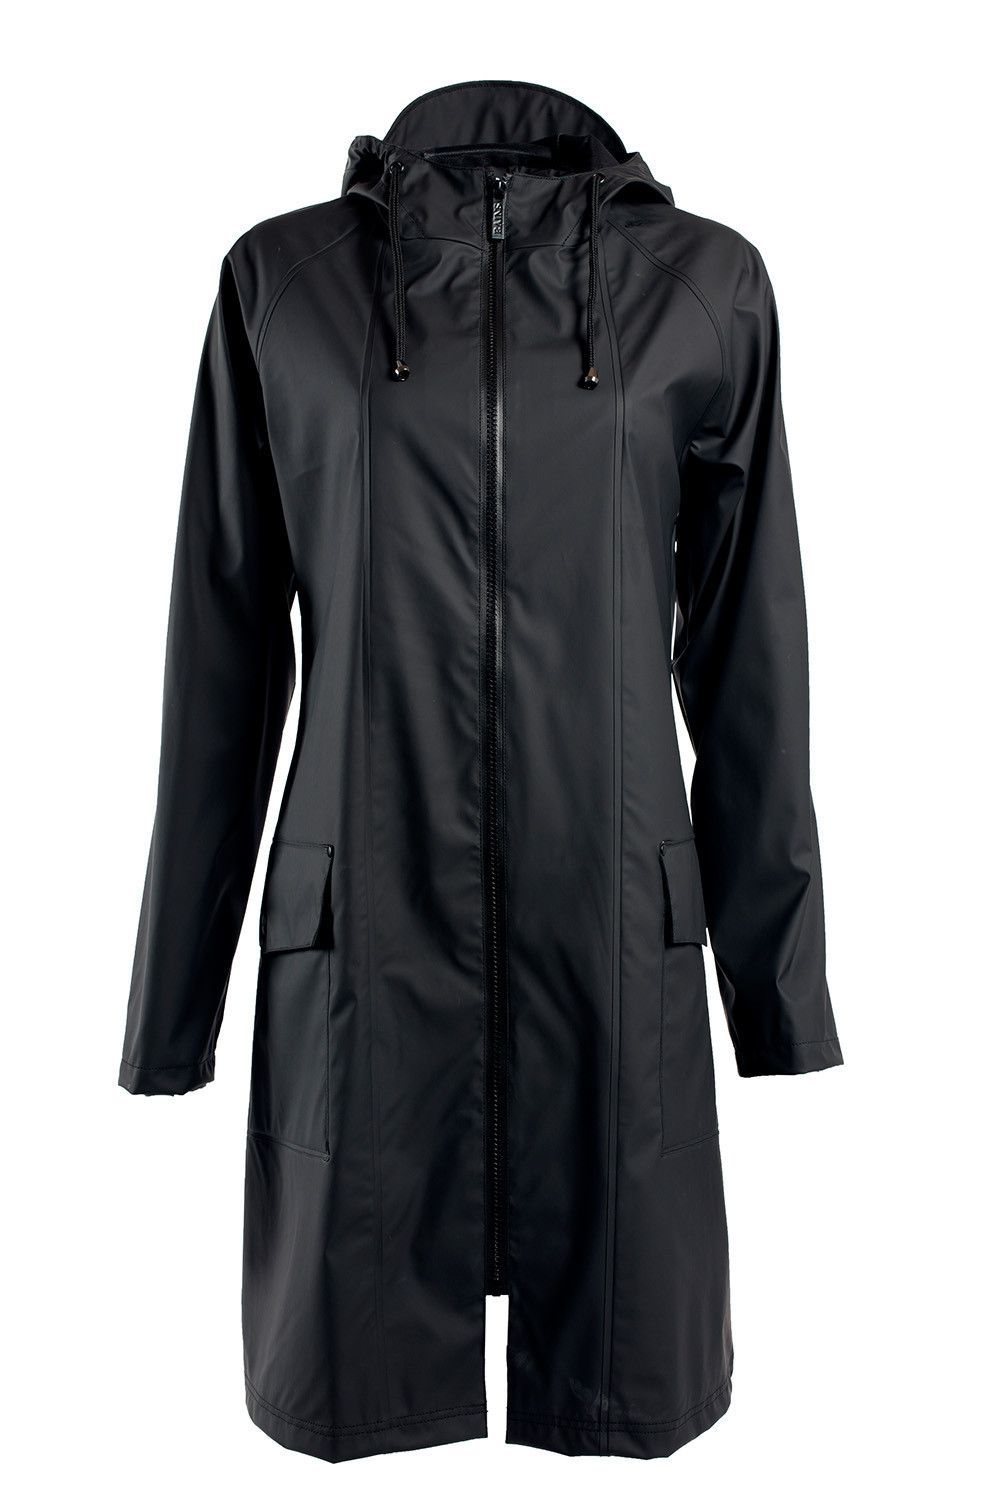 New RAINS Of Denmark A Jacket in Black